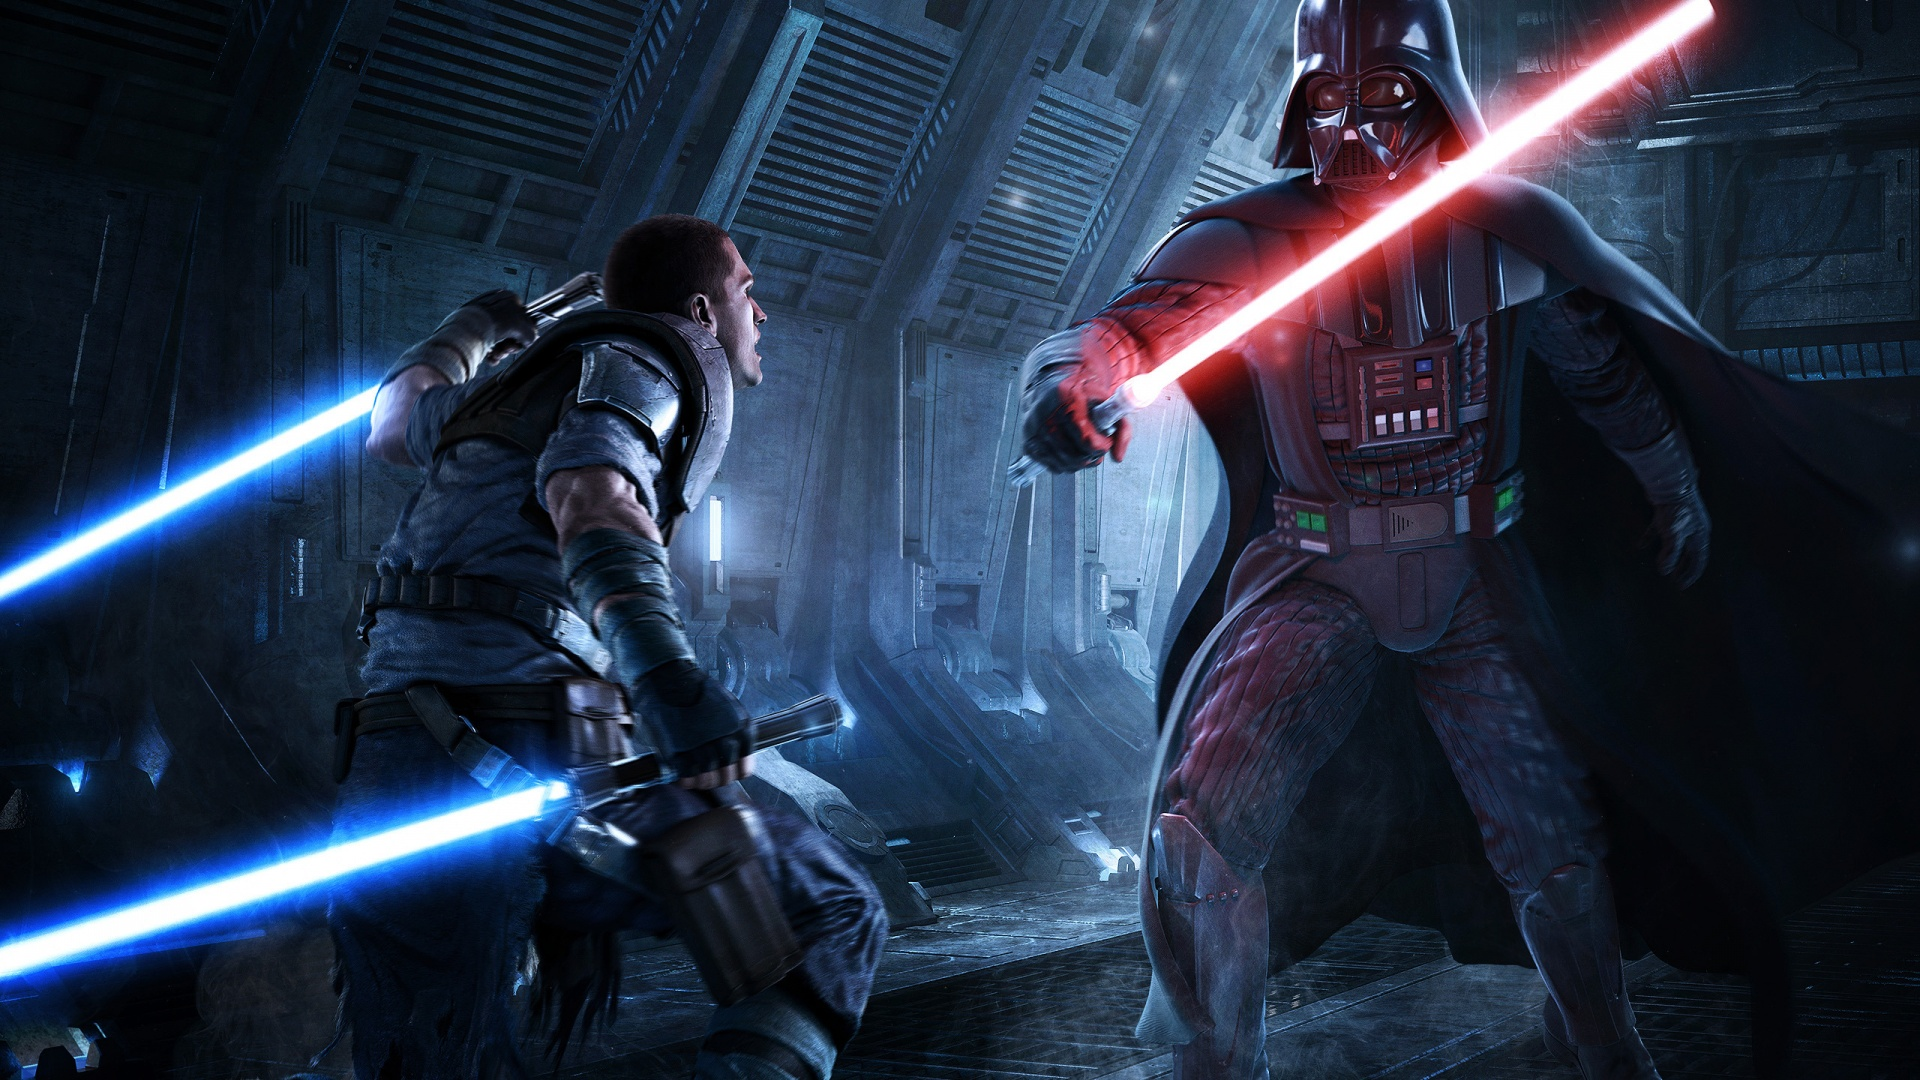 star wars force unleashed 2 wallpapers 28364 1920x1080